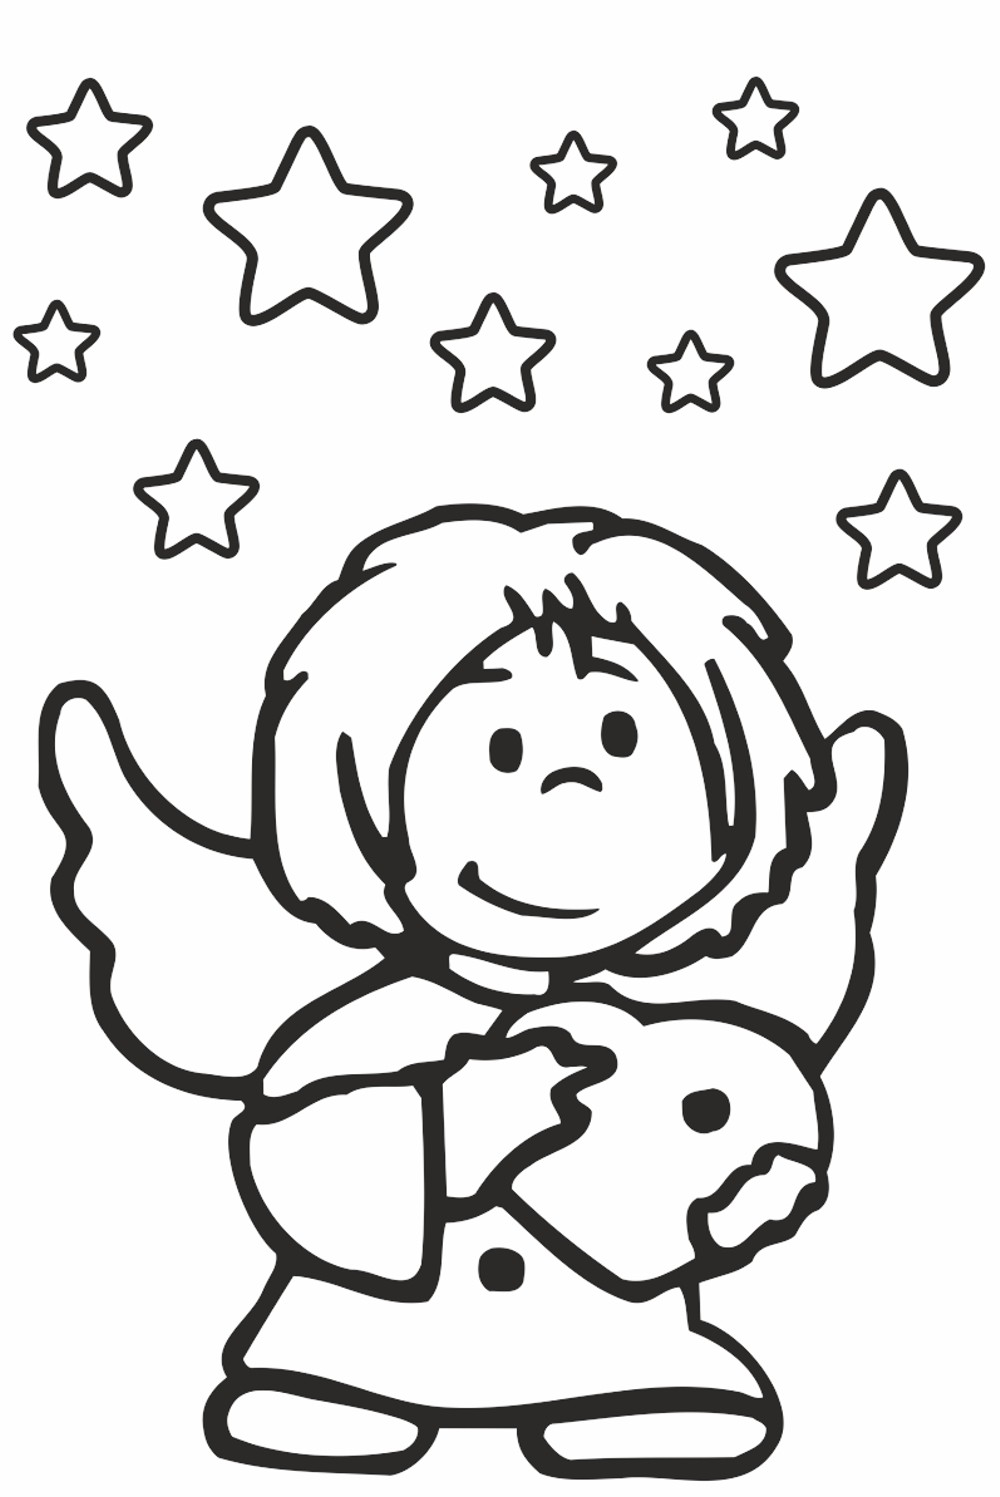 Sticker guardian angel and stars  300 x 200 mm – Bild 1